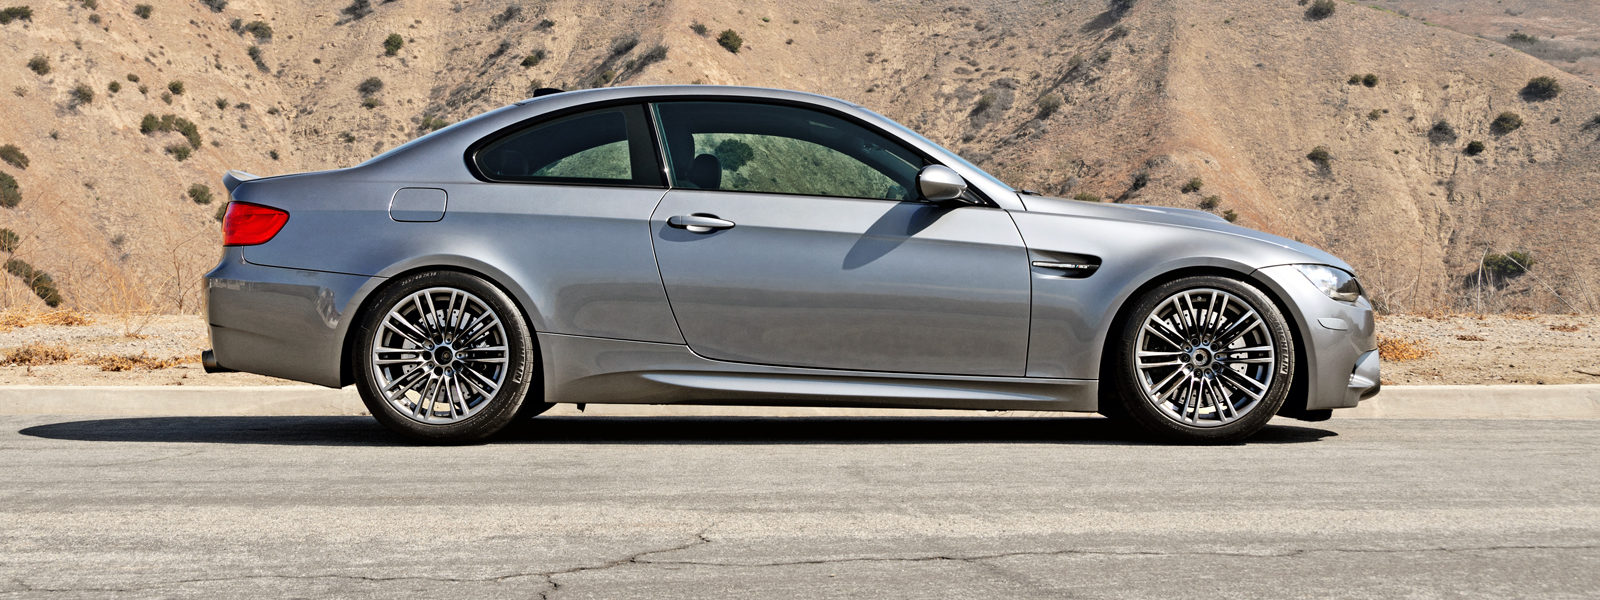 Space Gray E92 BMW M3